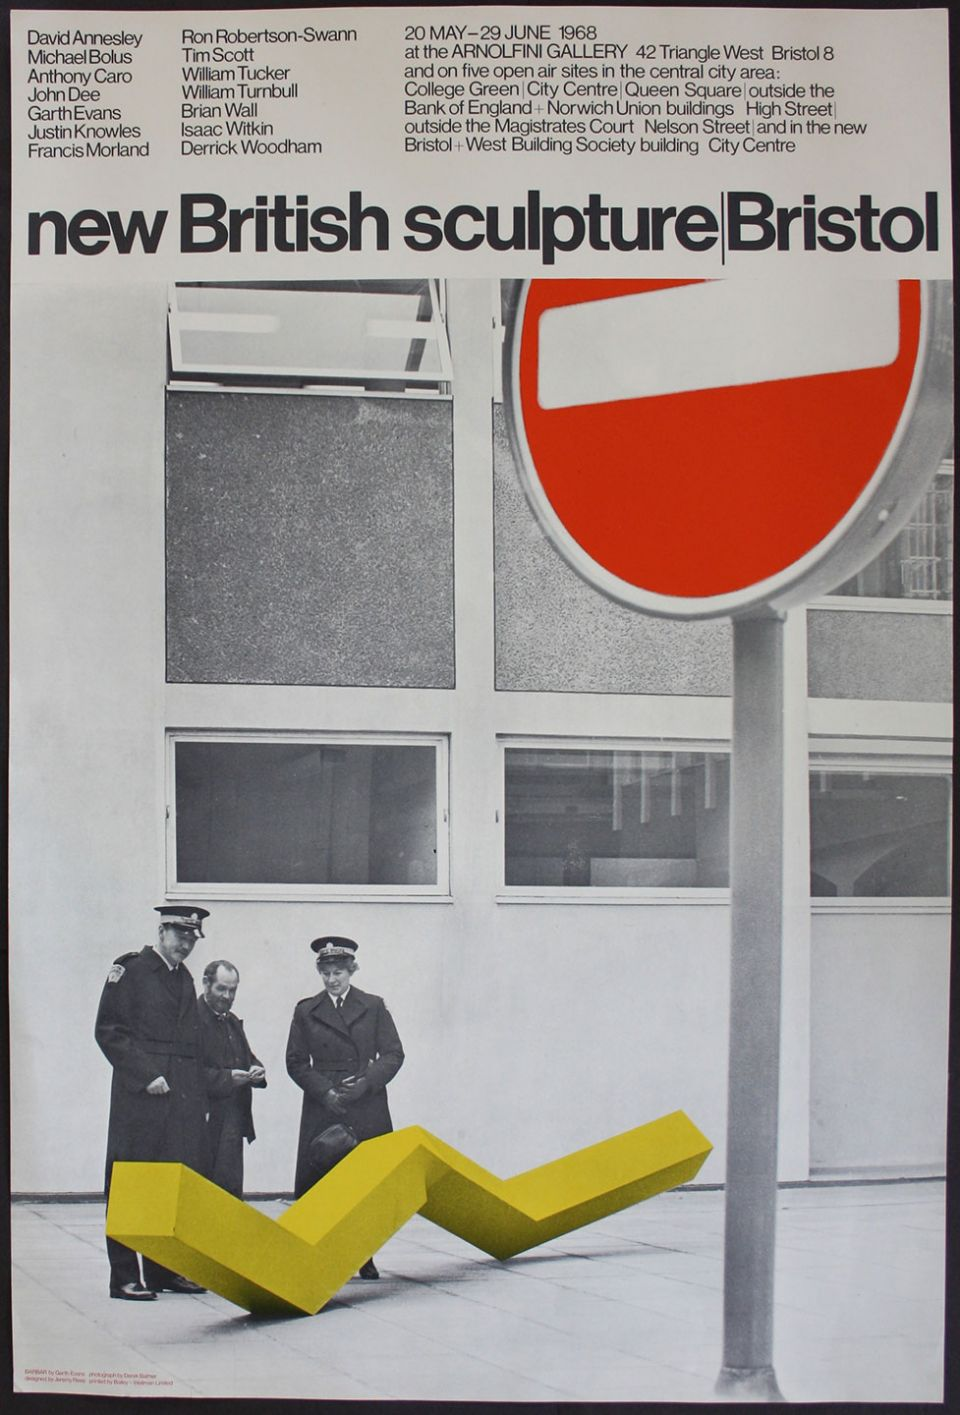 Exhibition poster for new British sculpture | Bristol (1968)